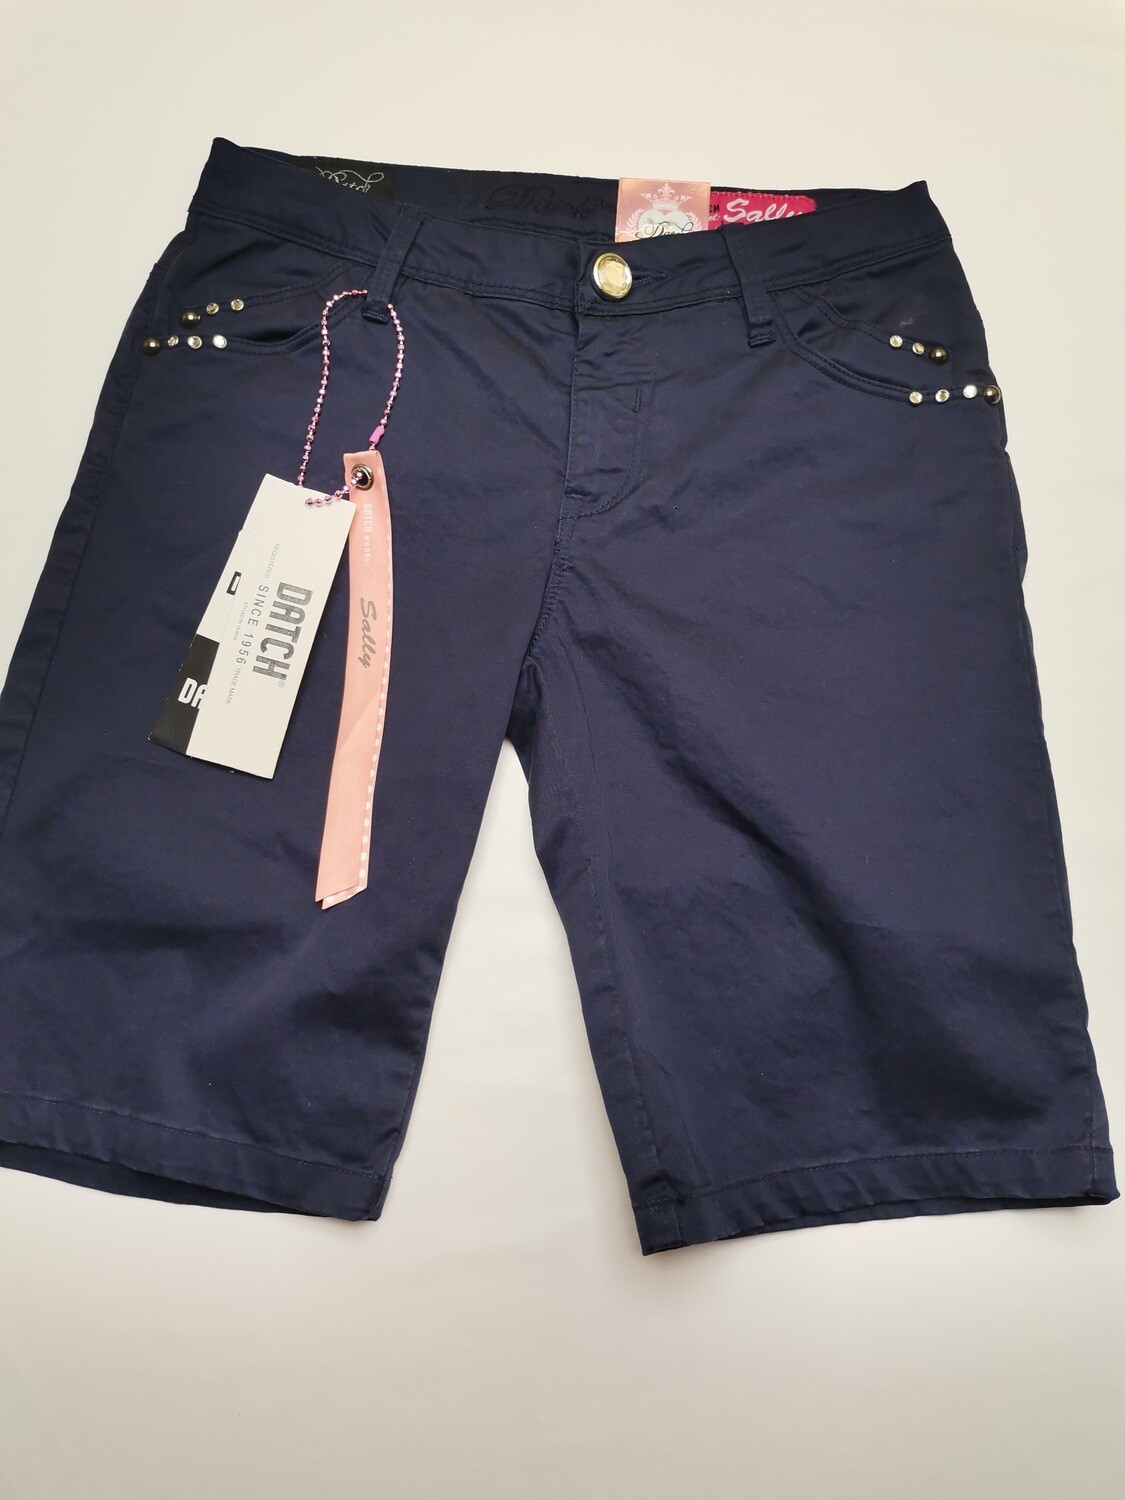 CALZONCINI DATCH SALLY JEANS TG 9-10 A